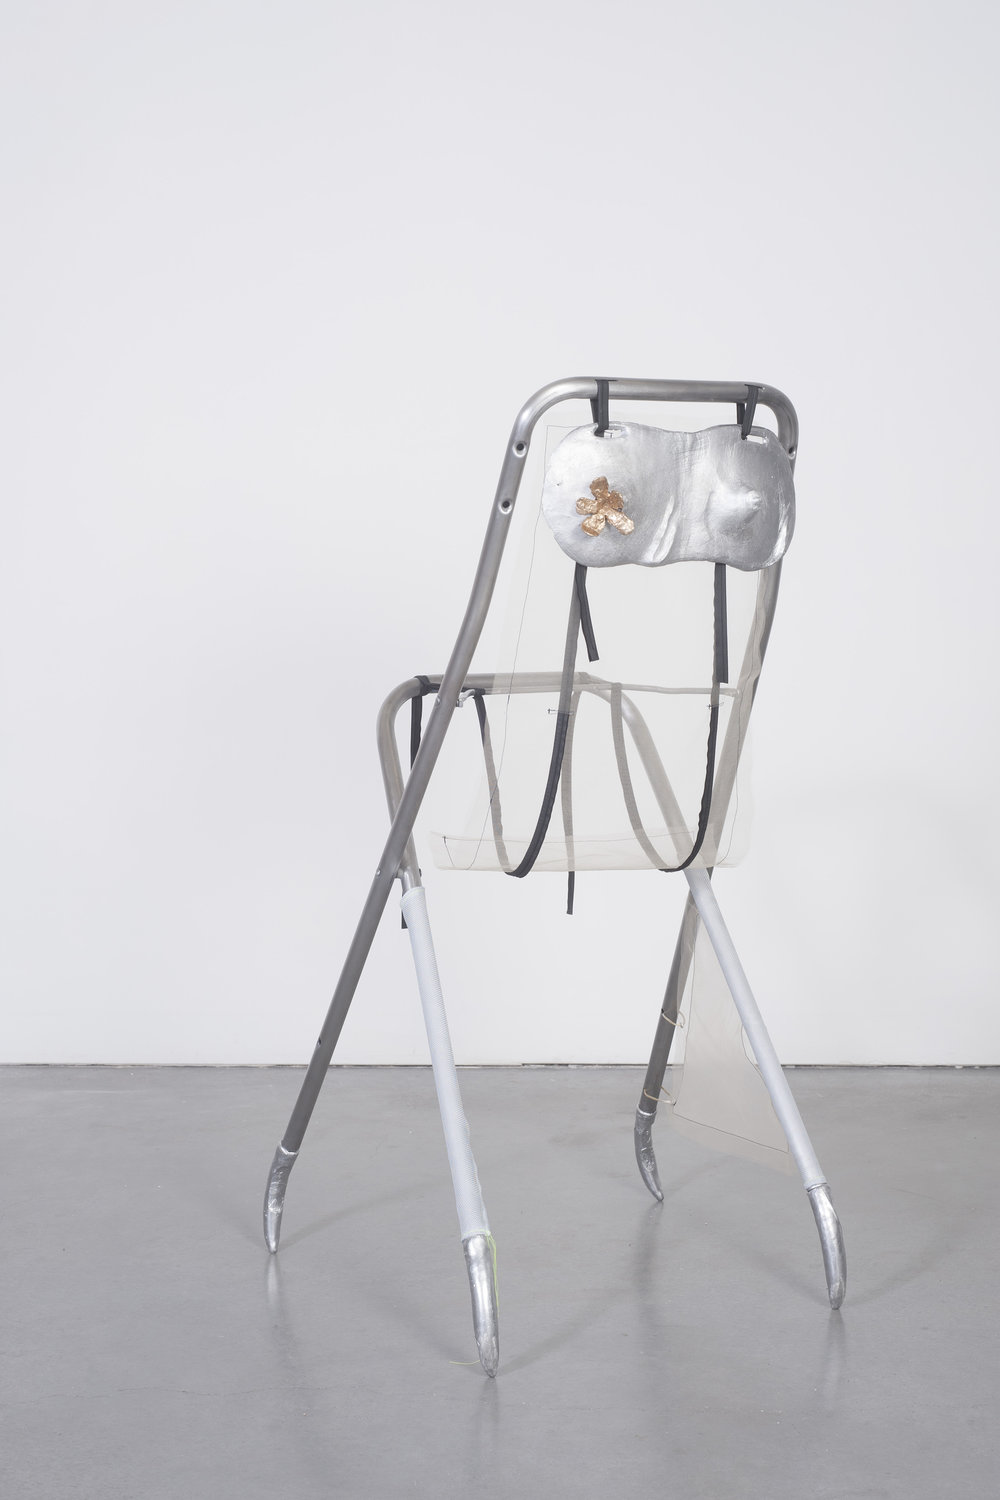 Ellie Hunter,  Trying it on , 2019, Cast aluminum, cast bronze, fabric, chair